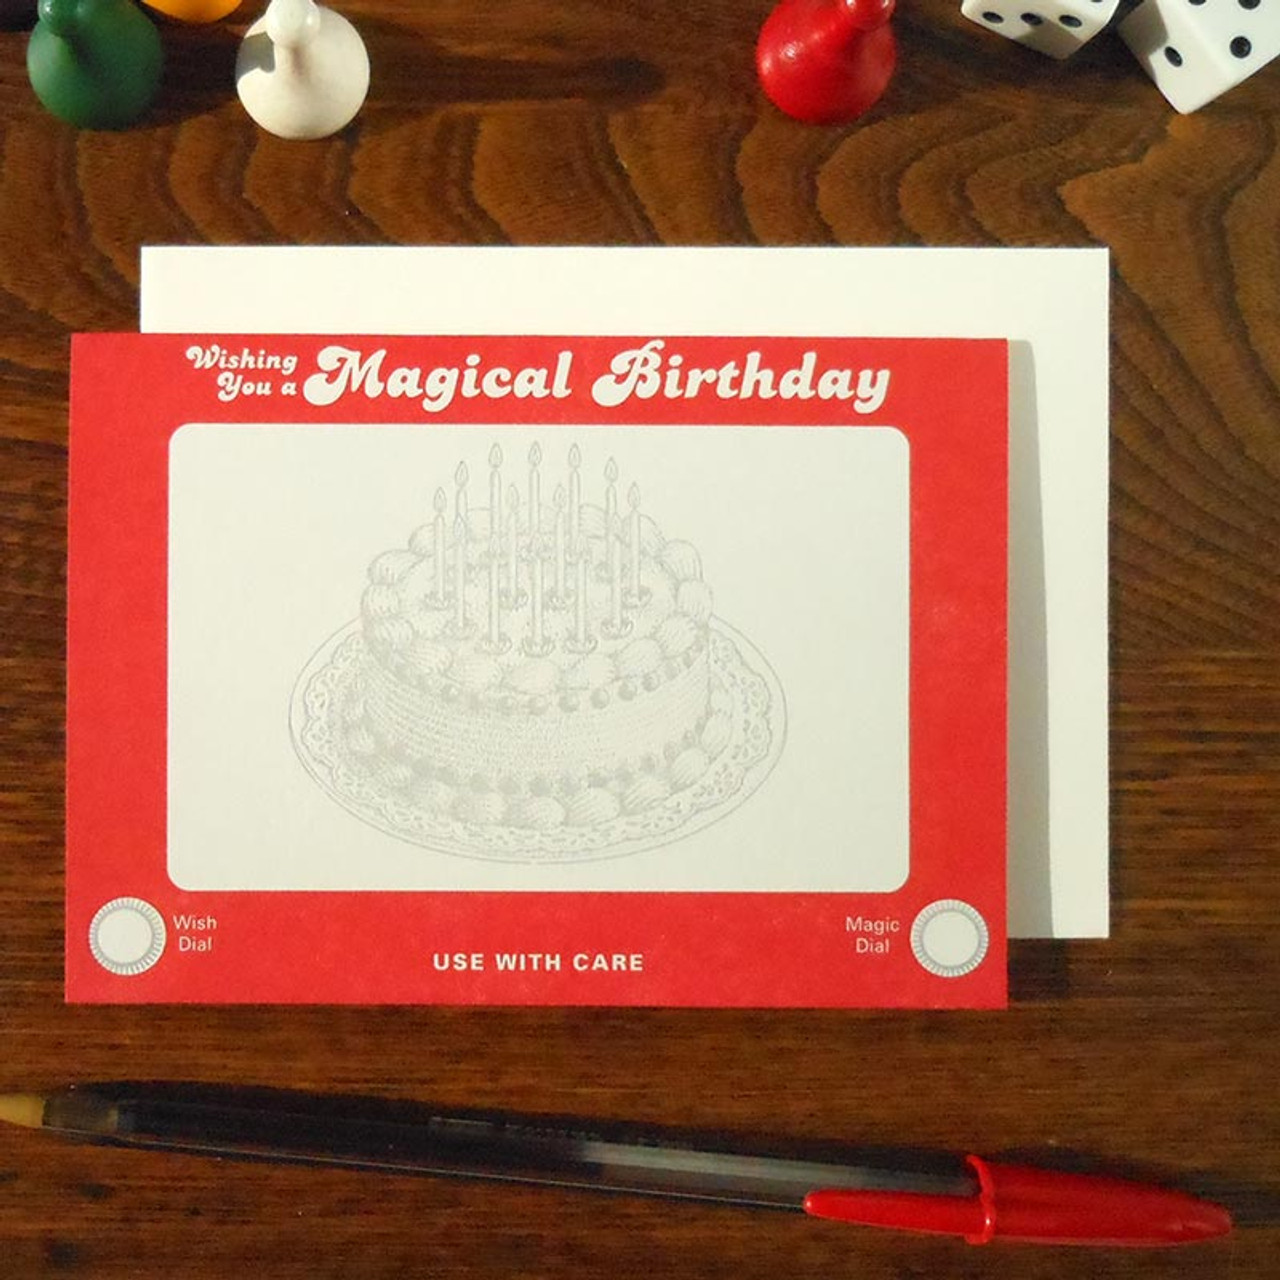 Retro Gift Card - Etch A Sketch Birthday Card